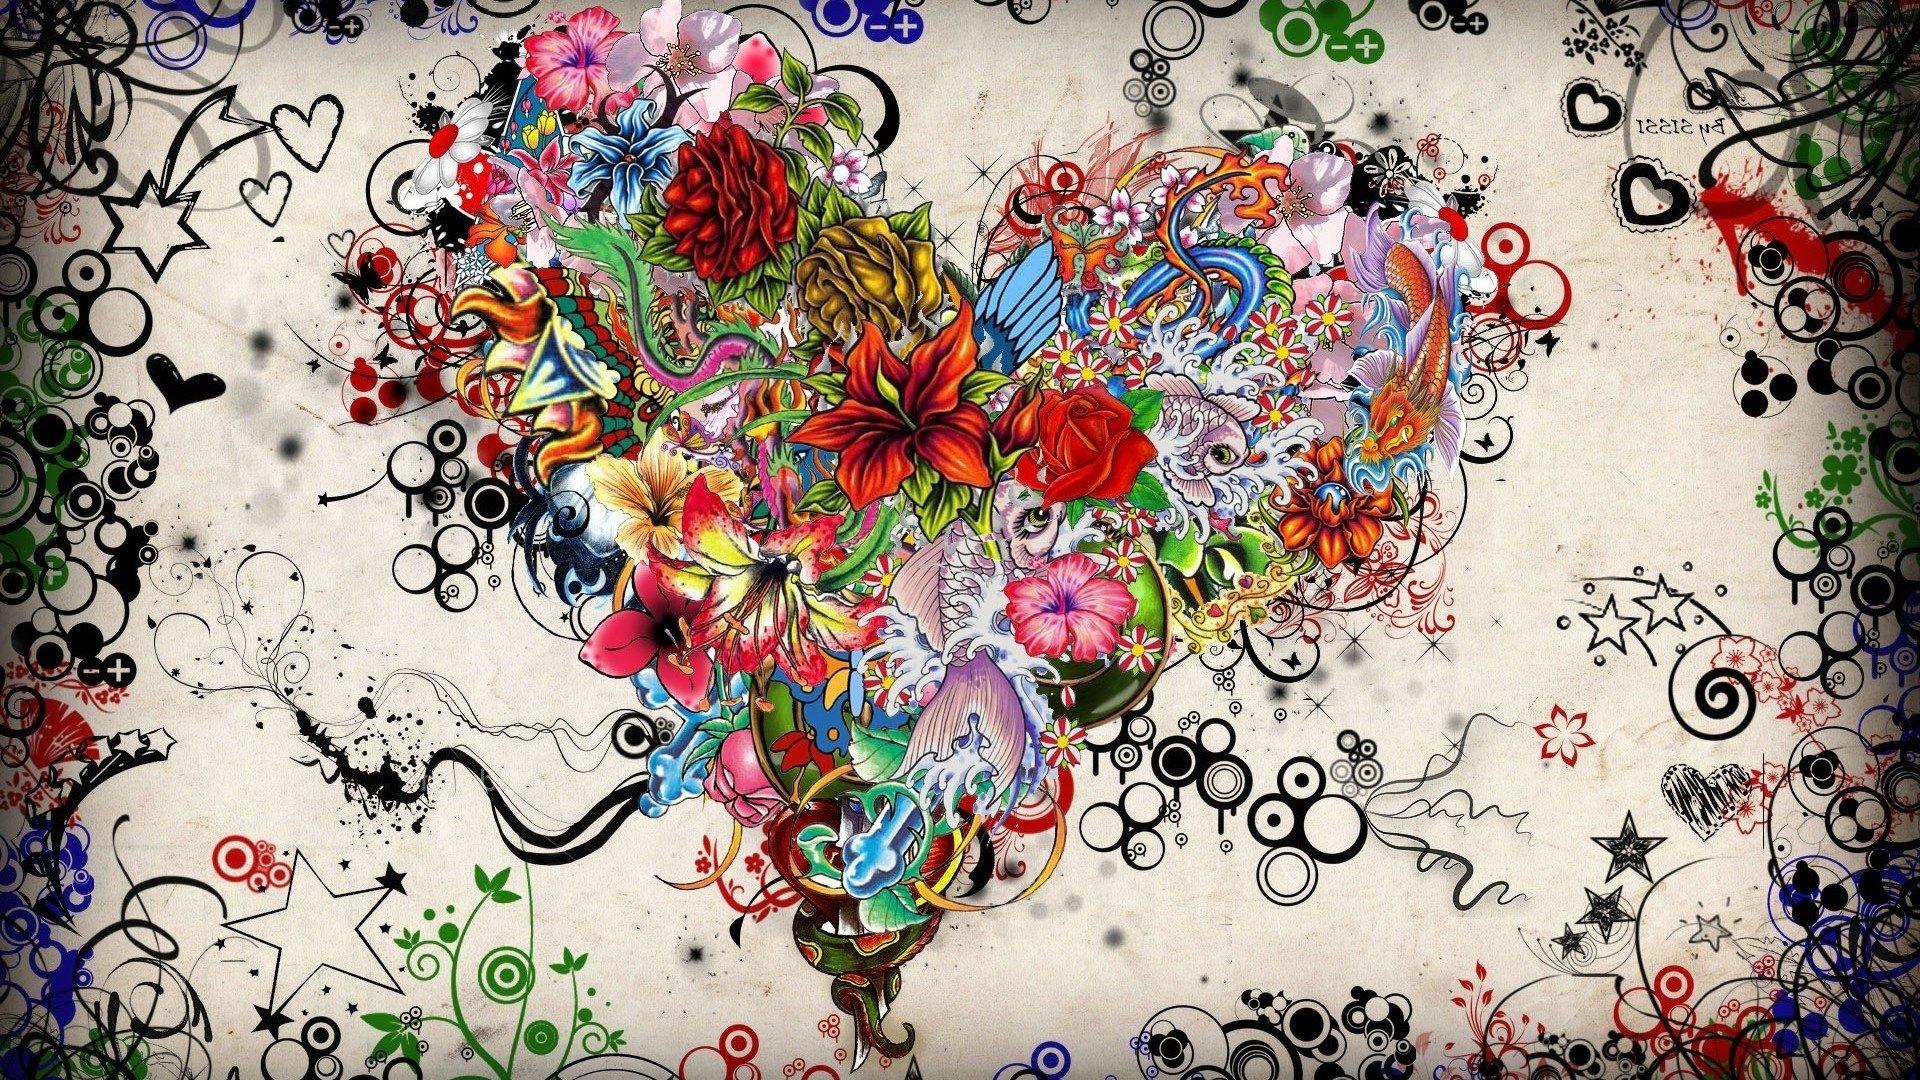 Artistic - Love  Artistic Heart Valentine's Day Drawing Flower Colorful Wallpaper